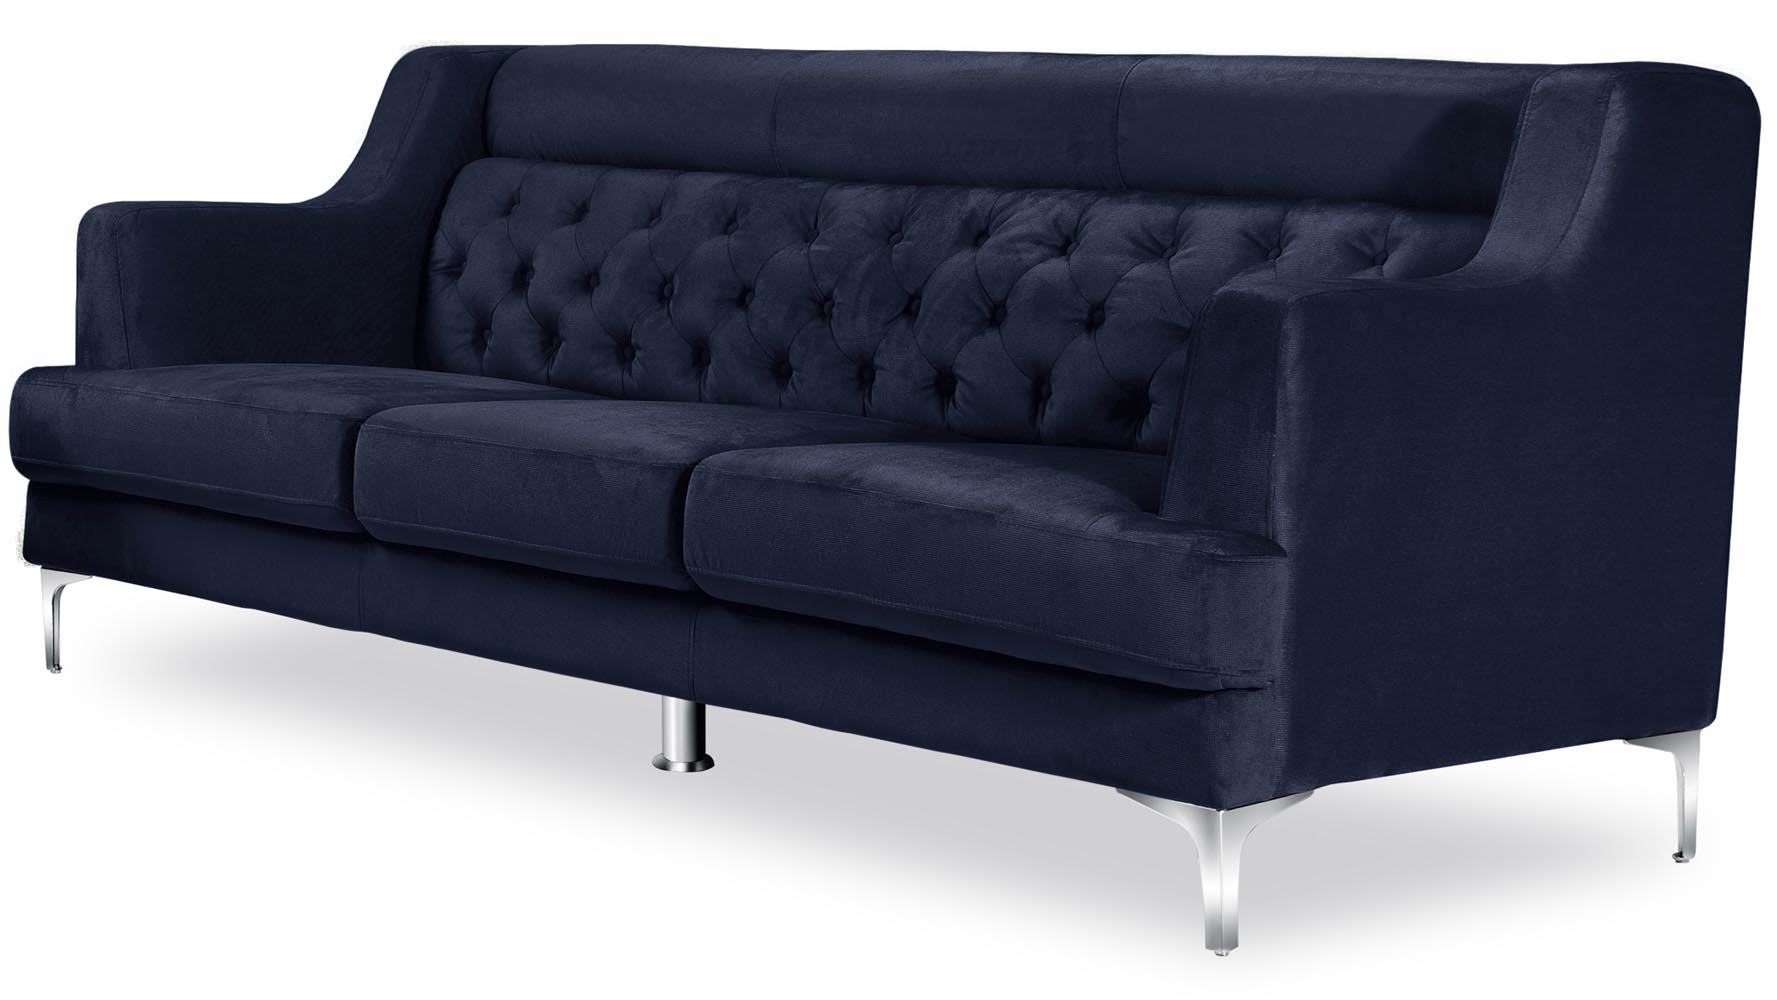 Zara Home Sofas zara fabric tufted sofa with chrome legs navy blue zuri furniture